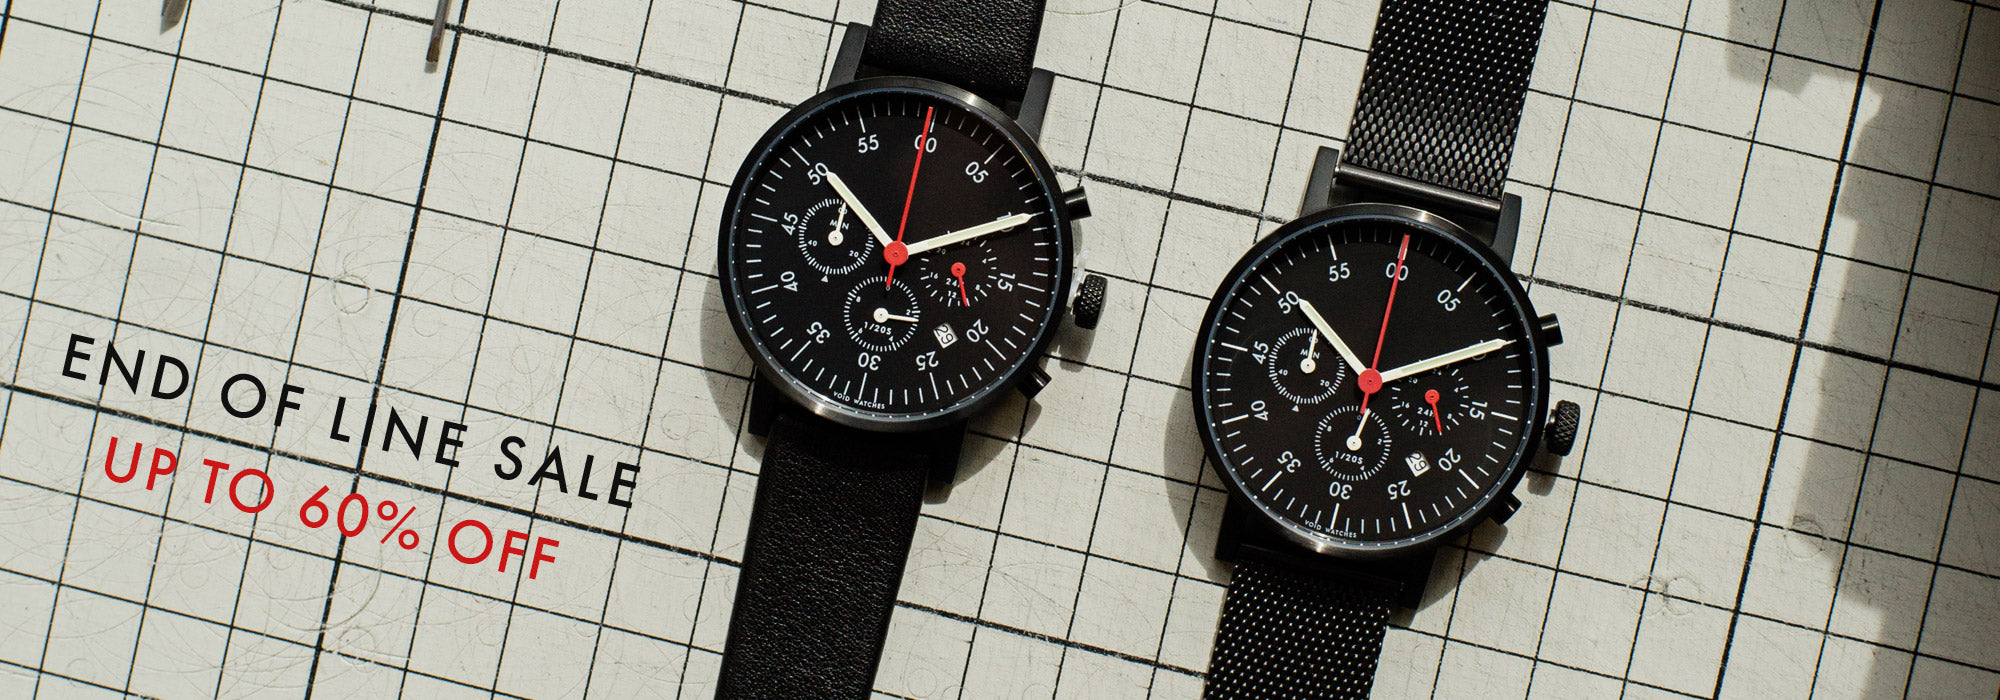 VOID Watches End of Line Sale